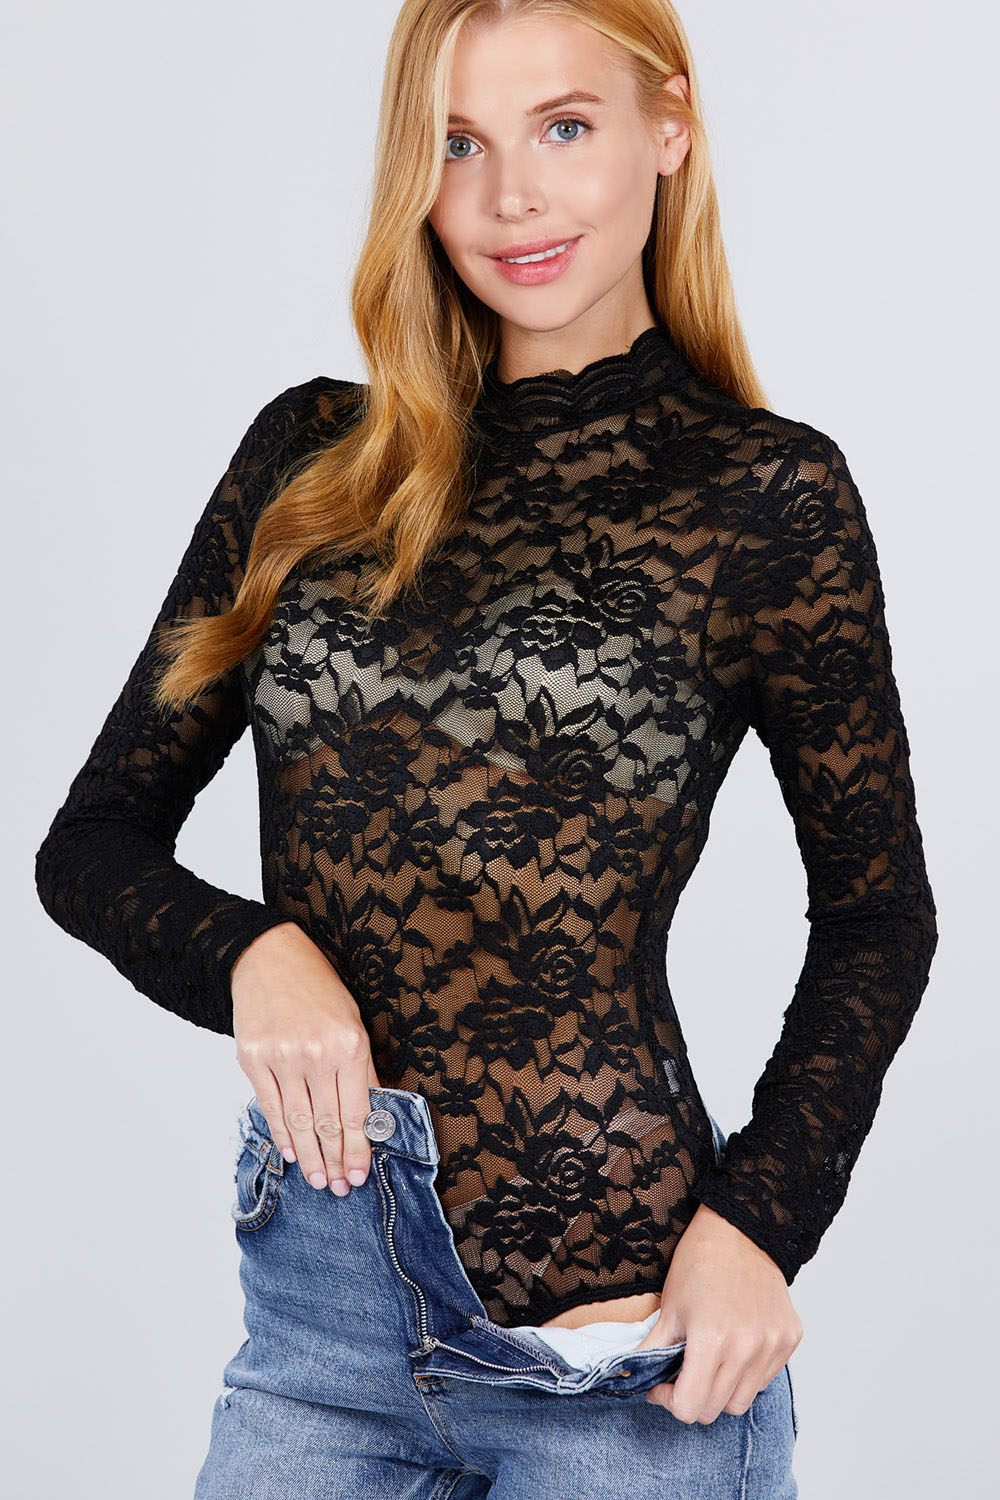 Pair the Scallop Lace Bodysuit with jeans and heels.About